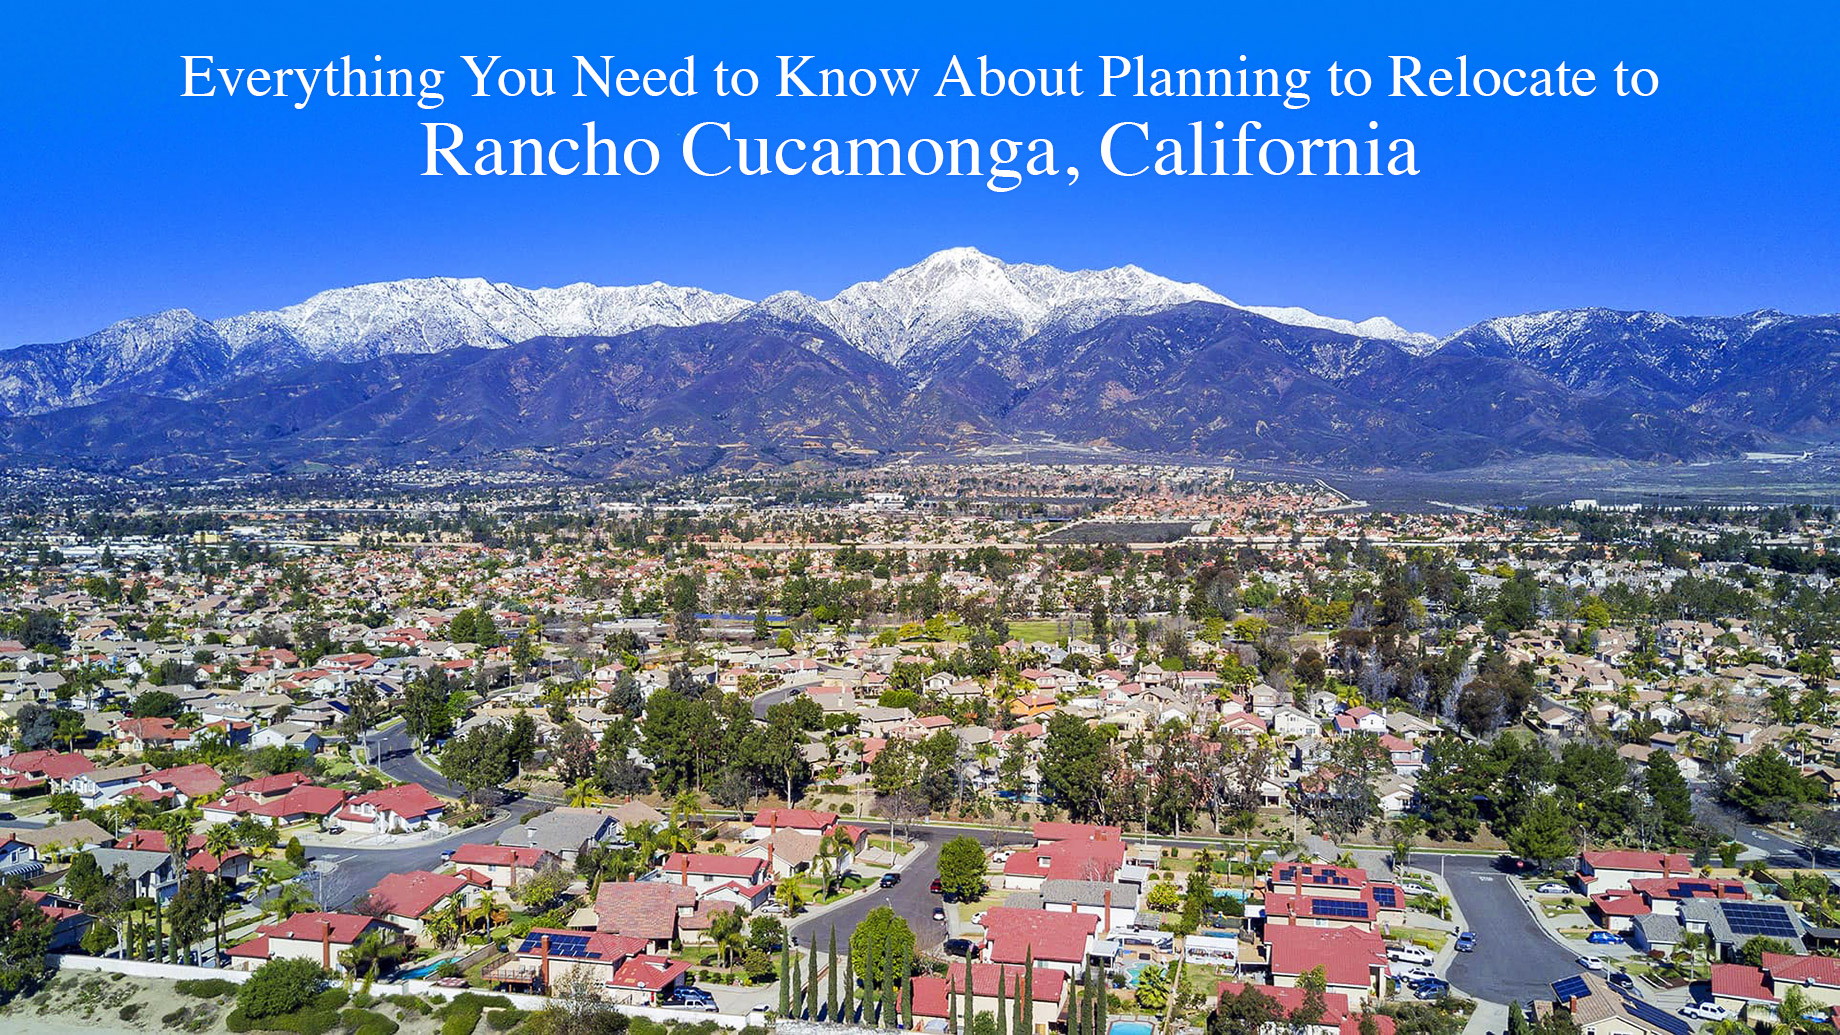 Everything You Need to Know About Planning to Relocate to Rancho Cucamonga, California